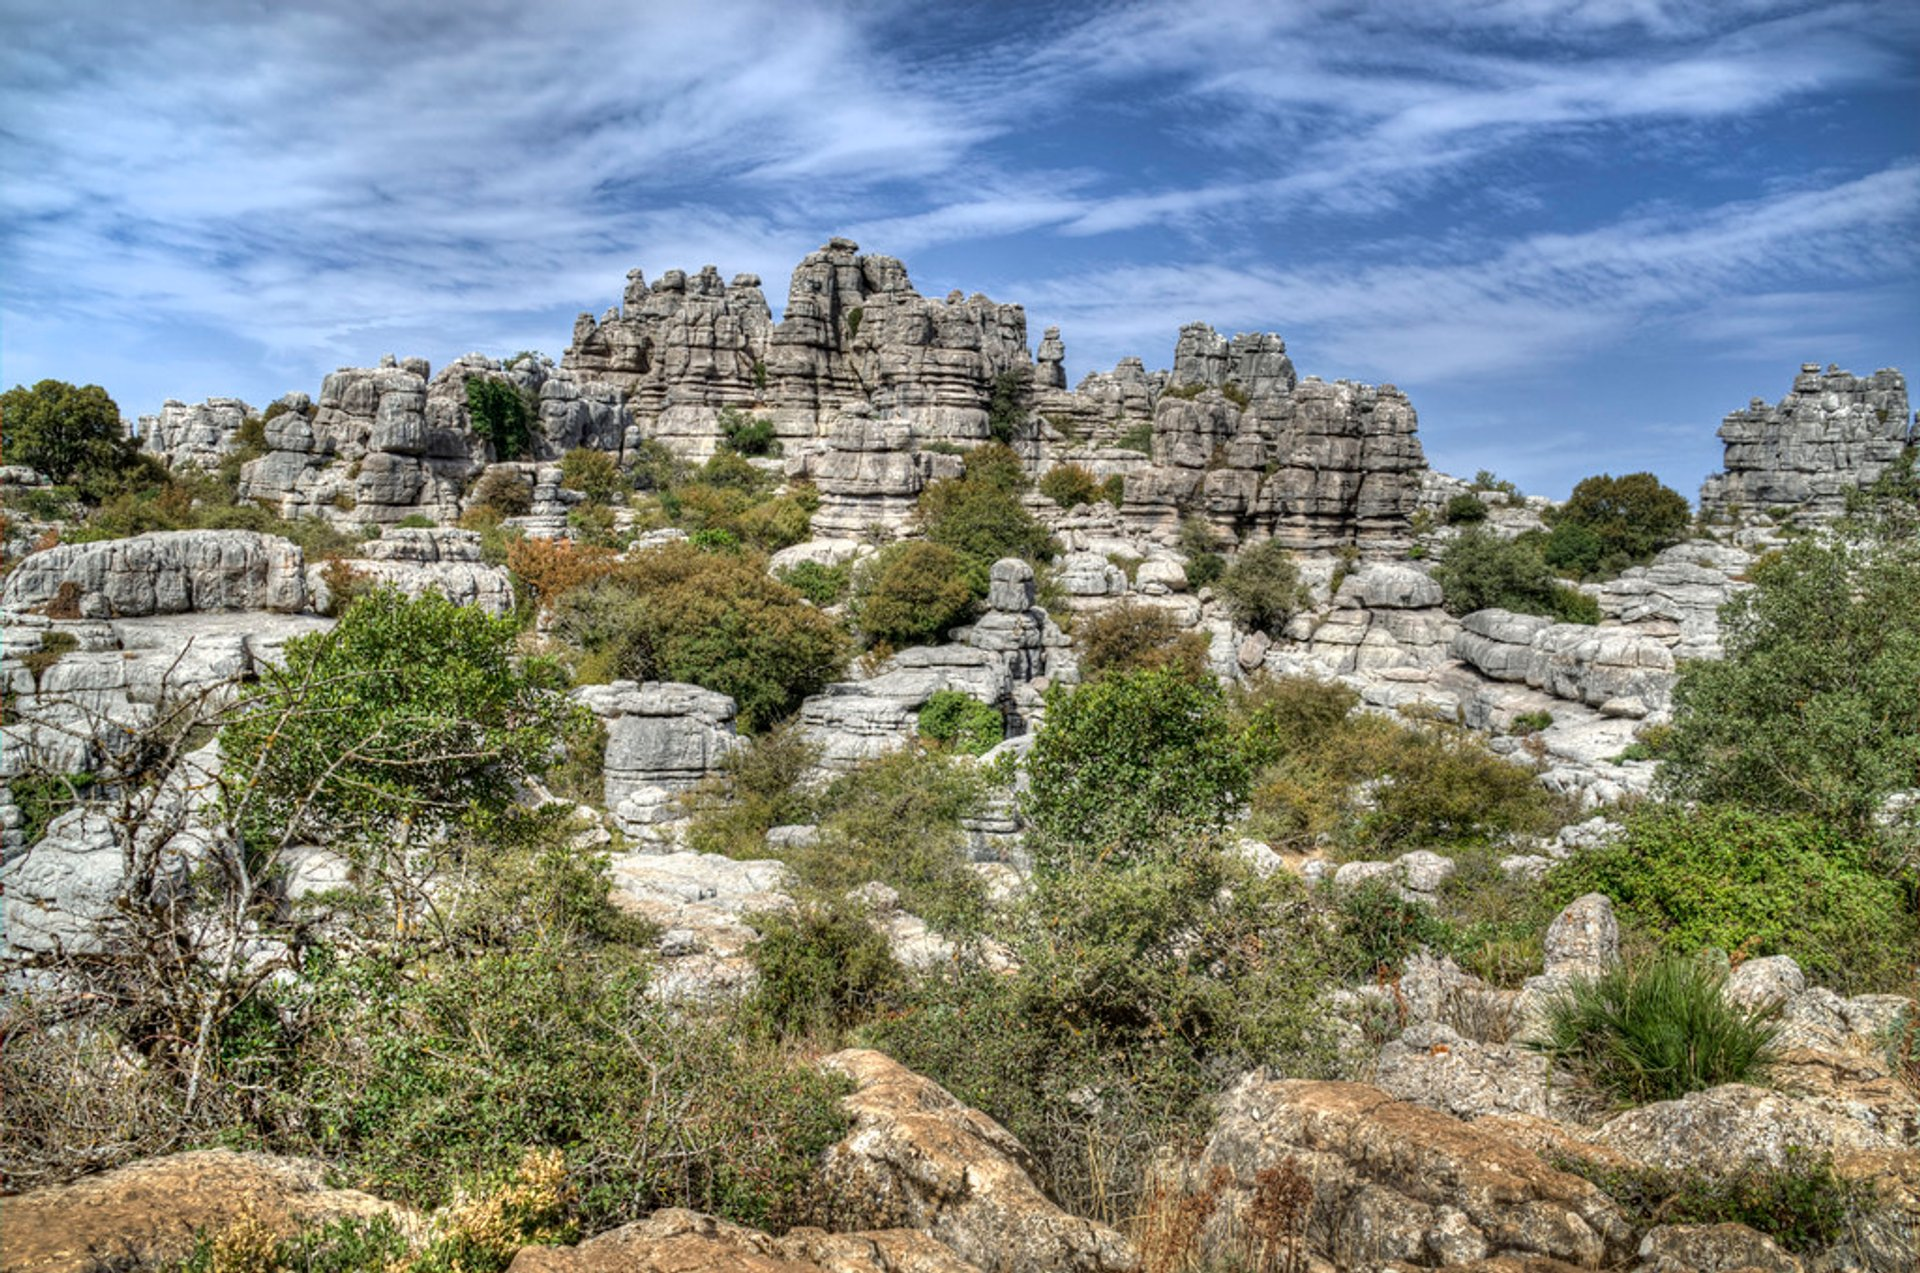 El Torcal de Antequera National Park in Spain 2020 - Best Time